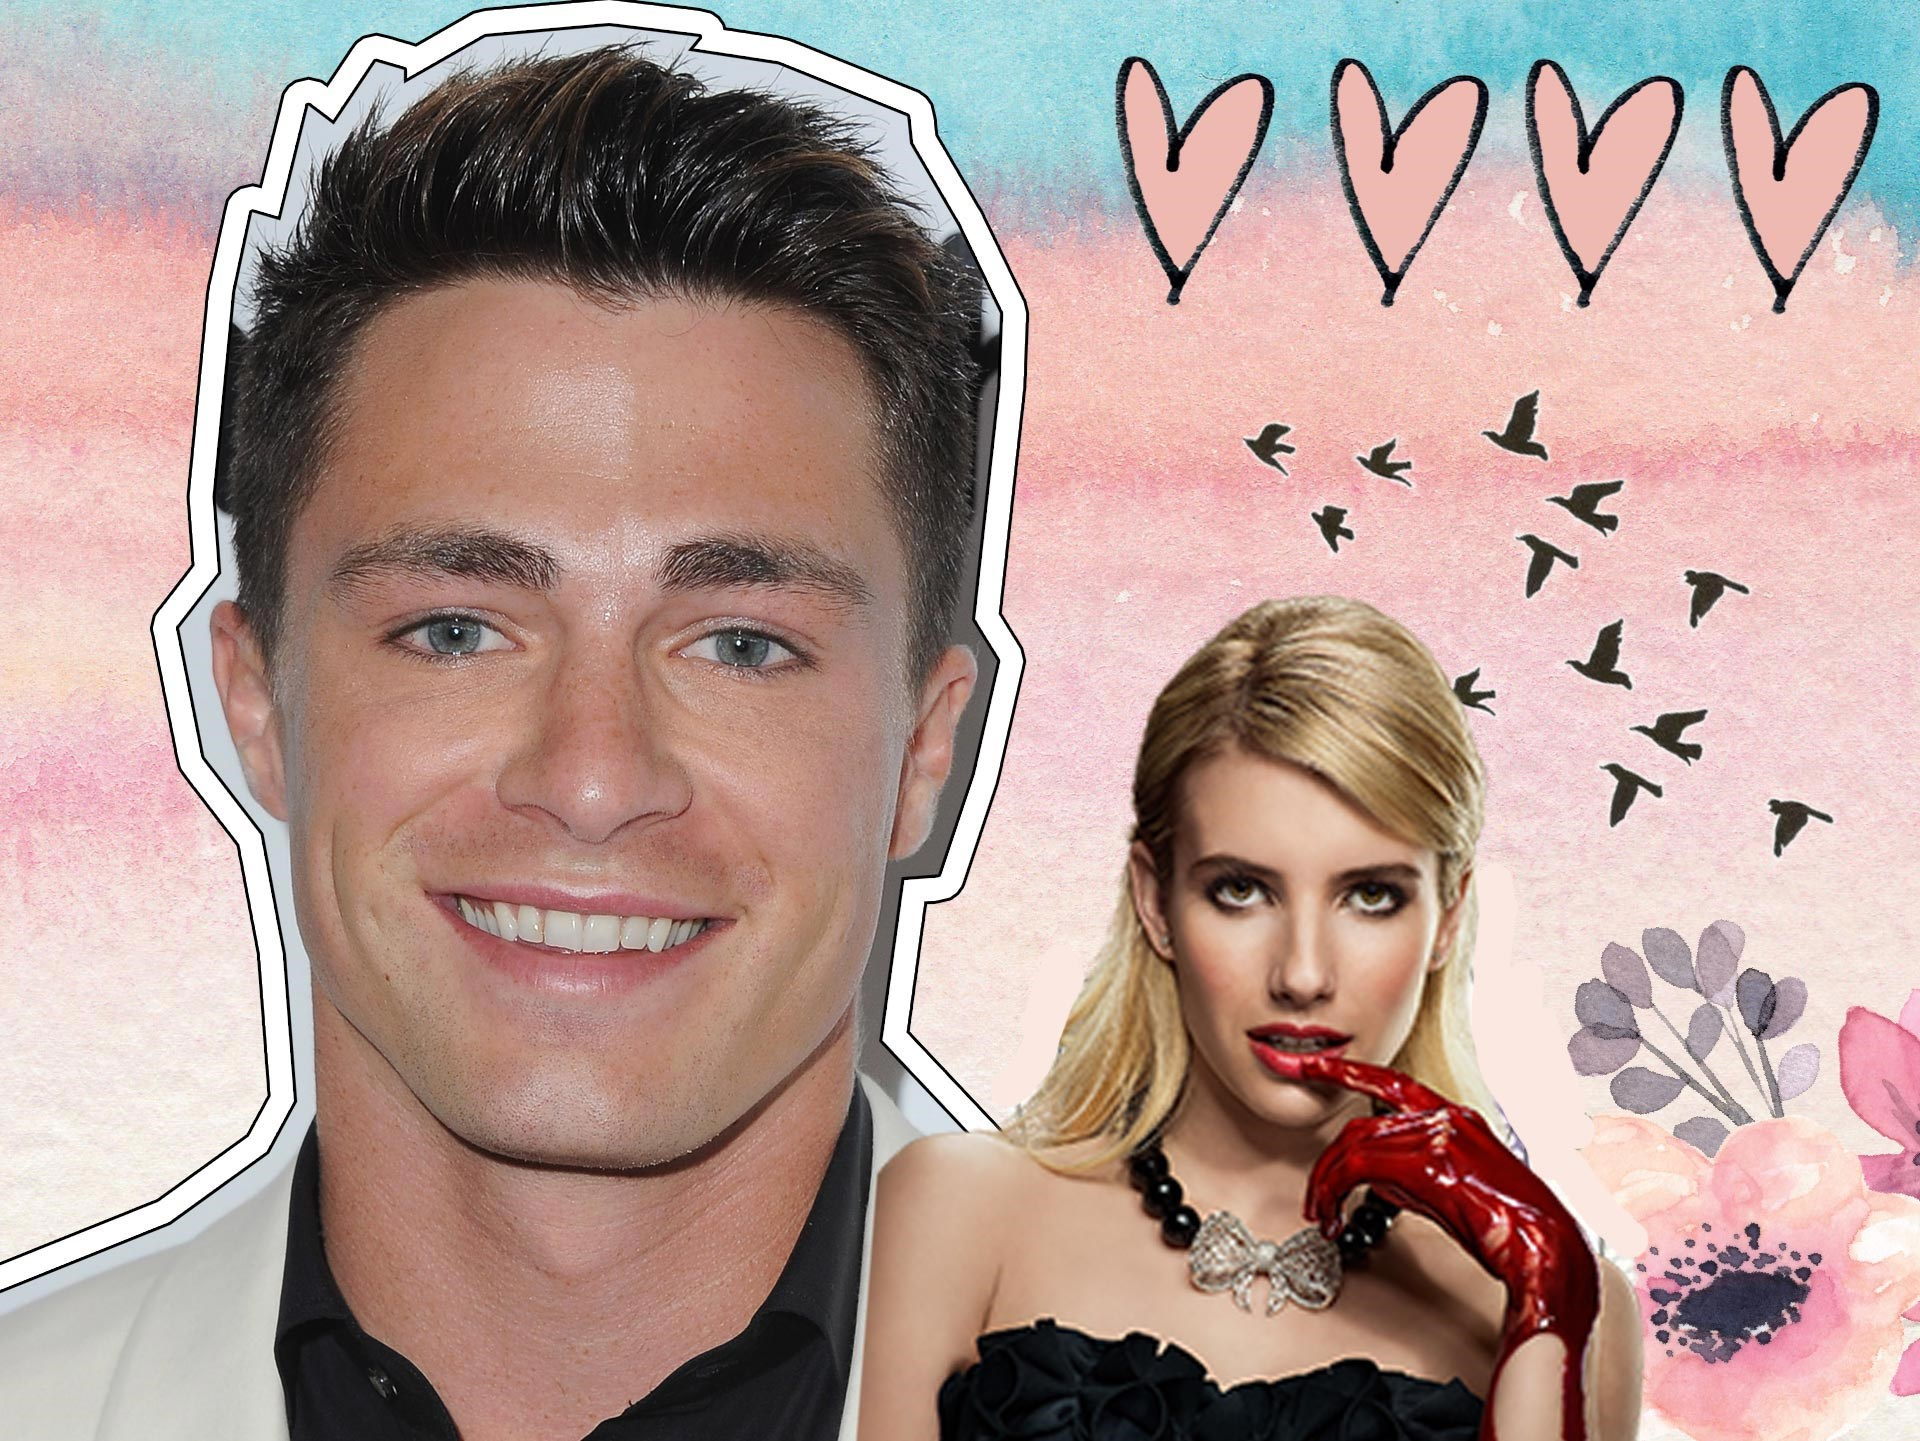 YASS! *Teen Wolf* and *Arrow* babe Colton Hayes is heading back to our TV screens to join the Chanels of Kappa Kappa Tau, reports [Entertainment Weekly](http://www.ew.com/article/2016/07/22/scream-queens-colton-haynes). At this stage it's only a guest role and it's unknown just yet who he will play. Hot doctor perhaps?